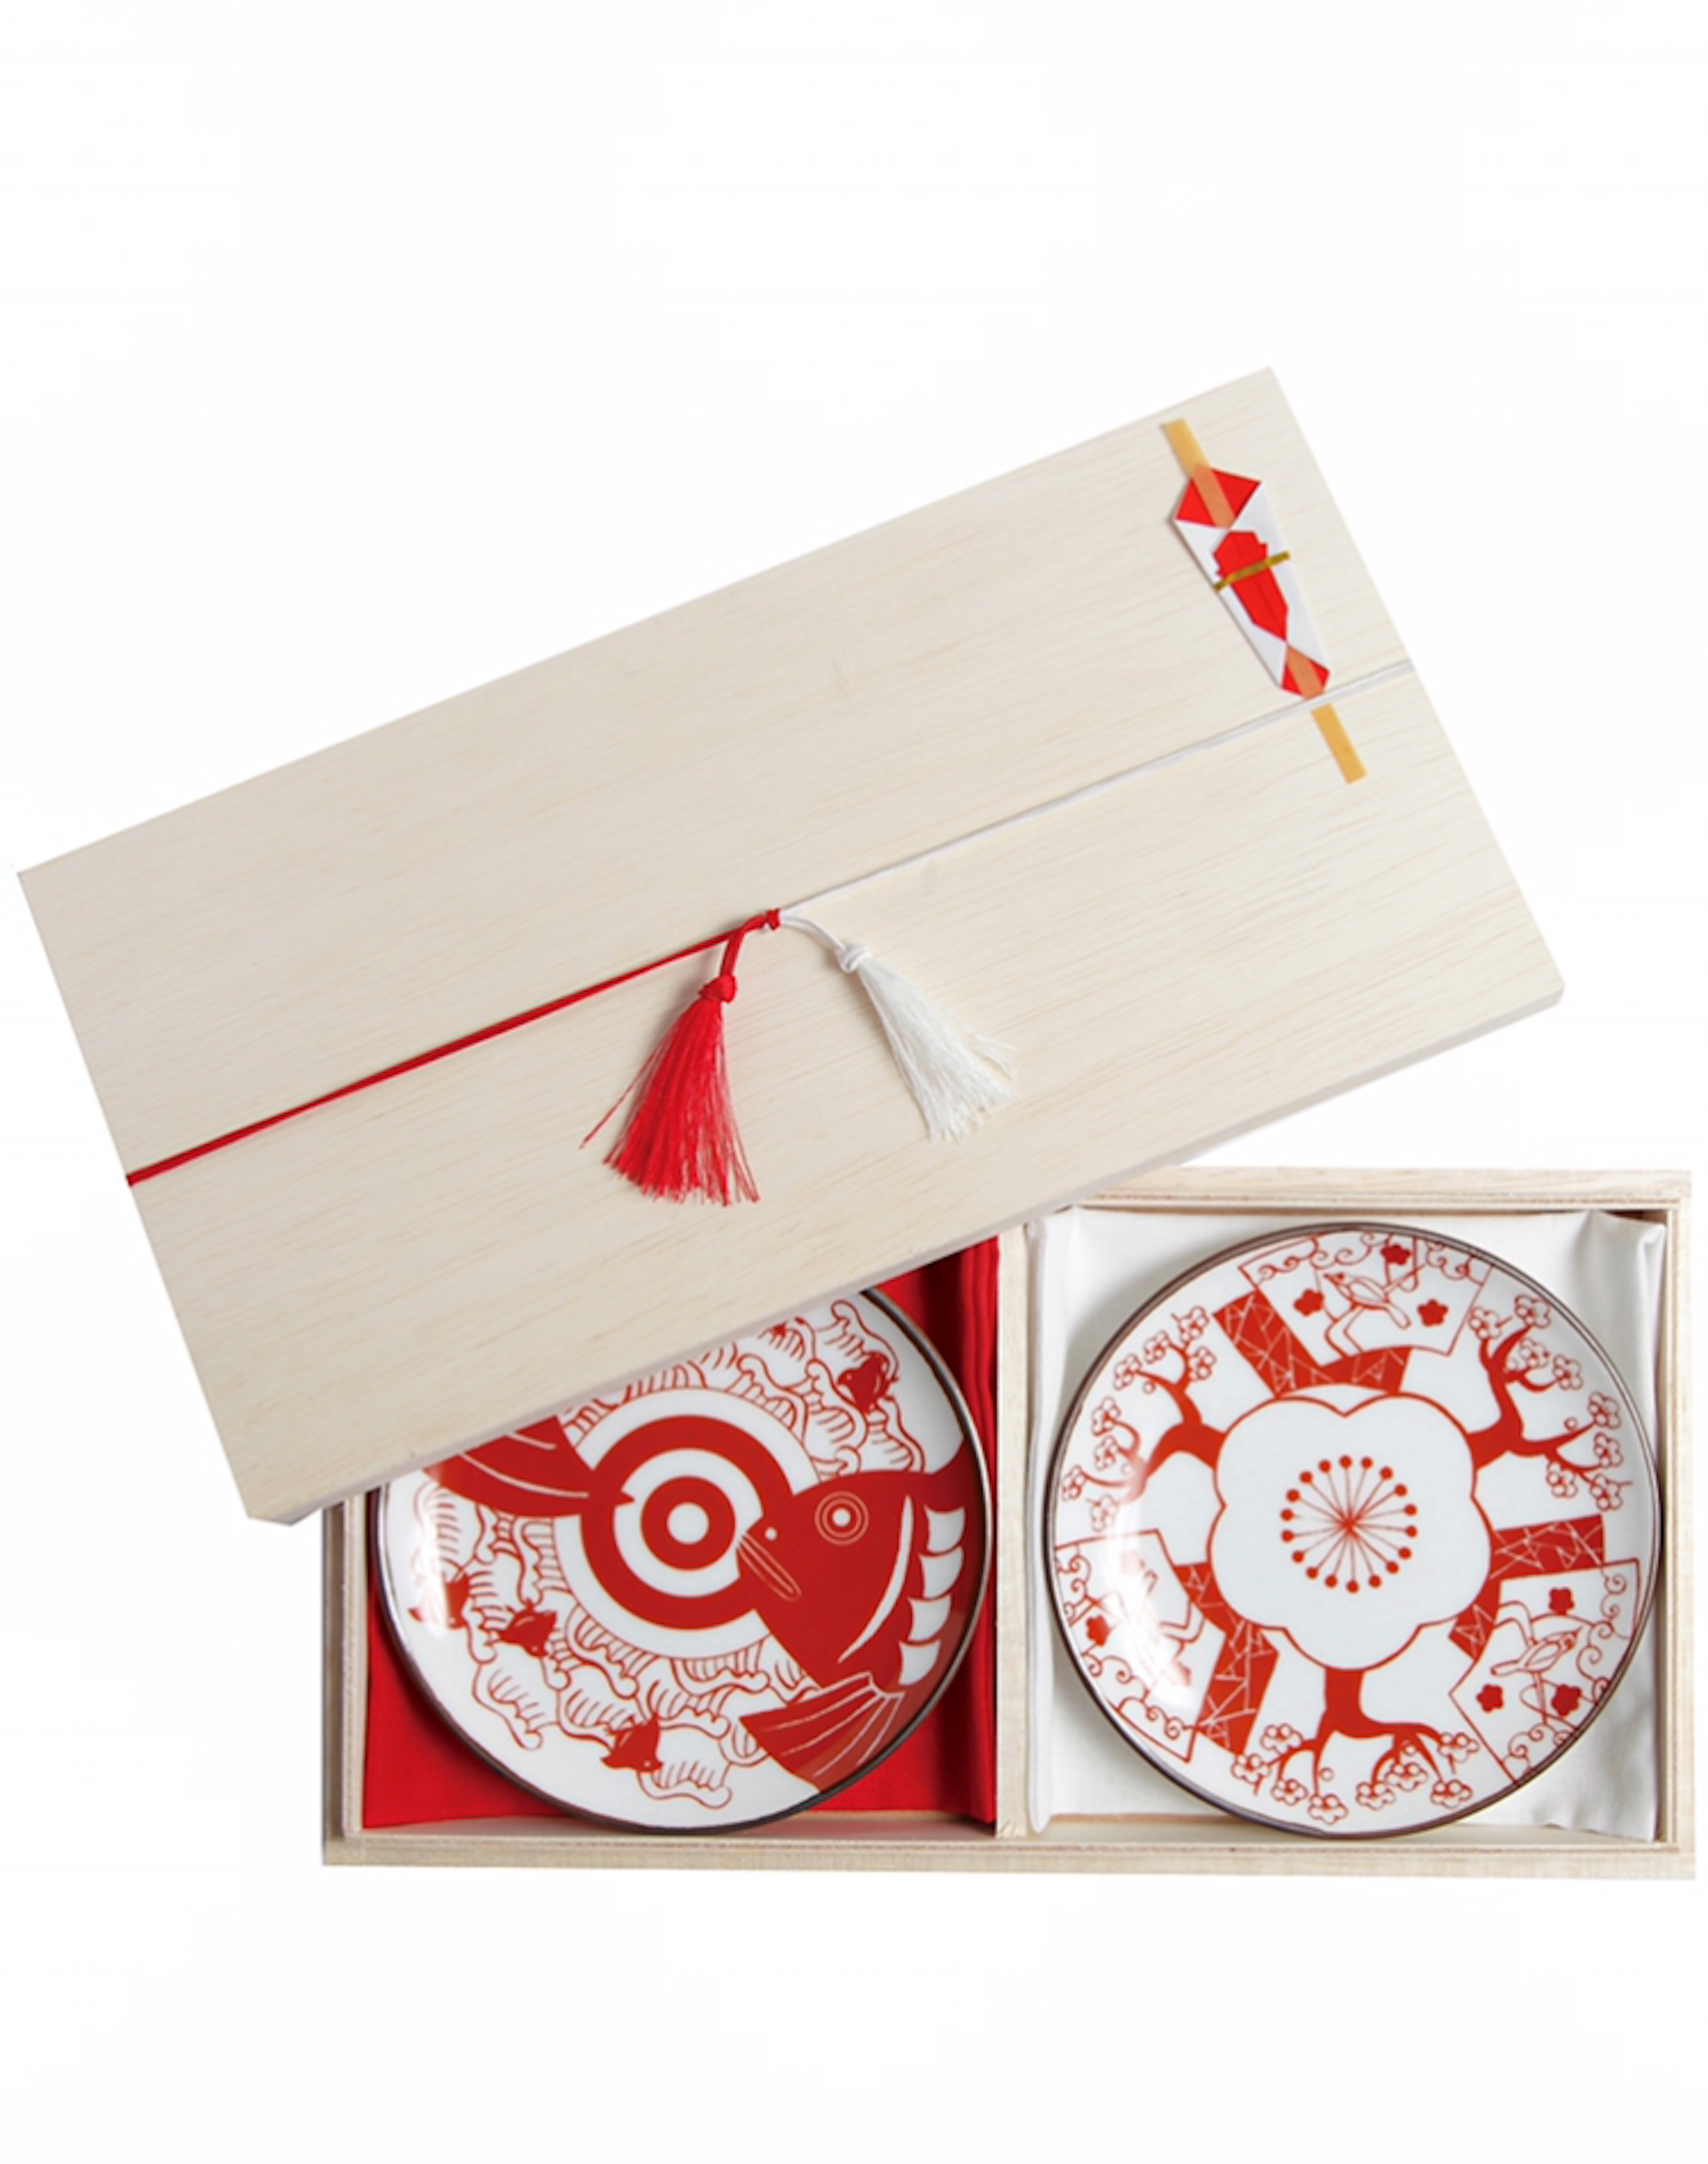 Wooden gift box for two small Kyototo plates